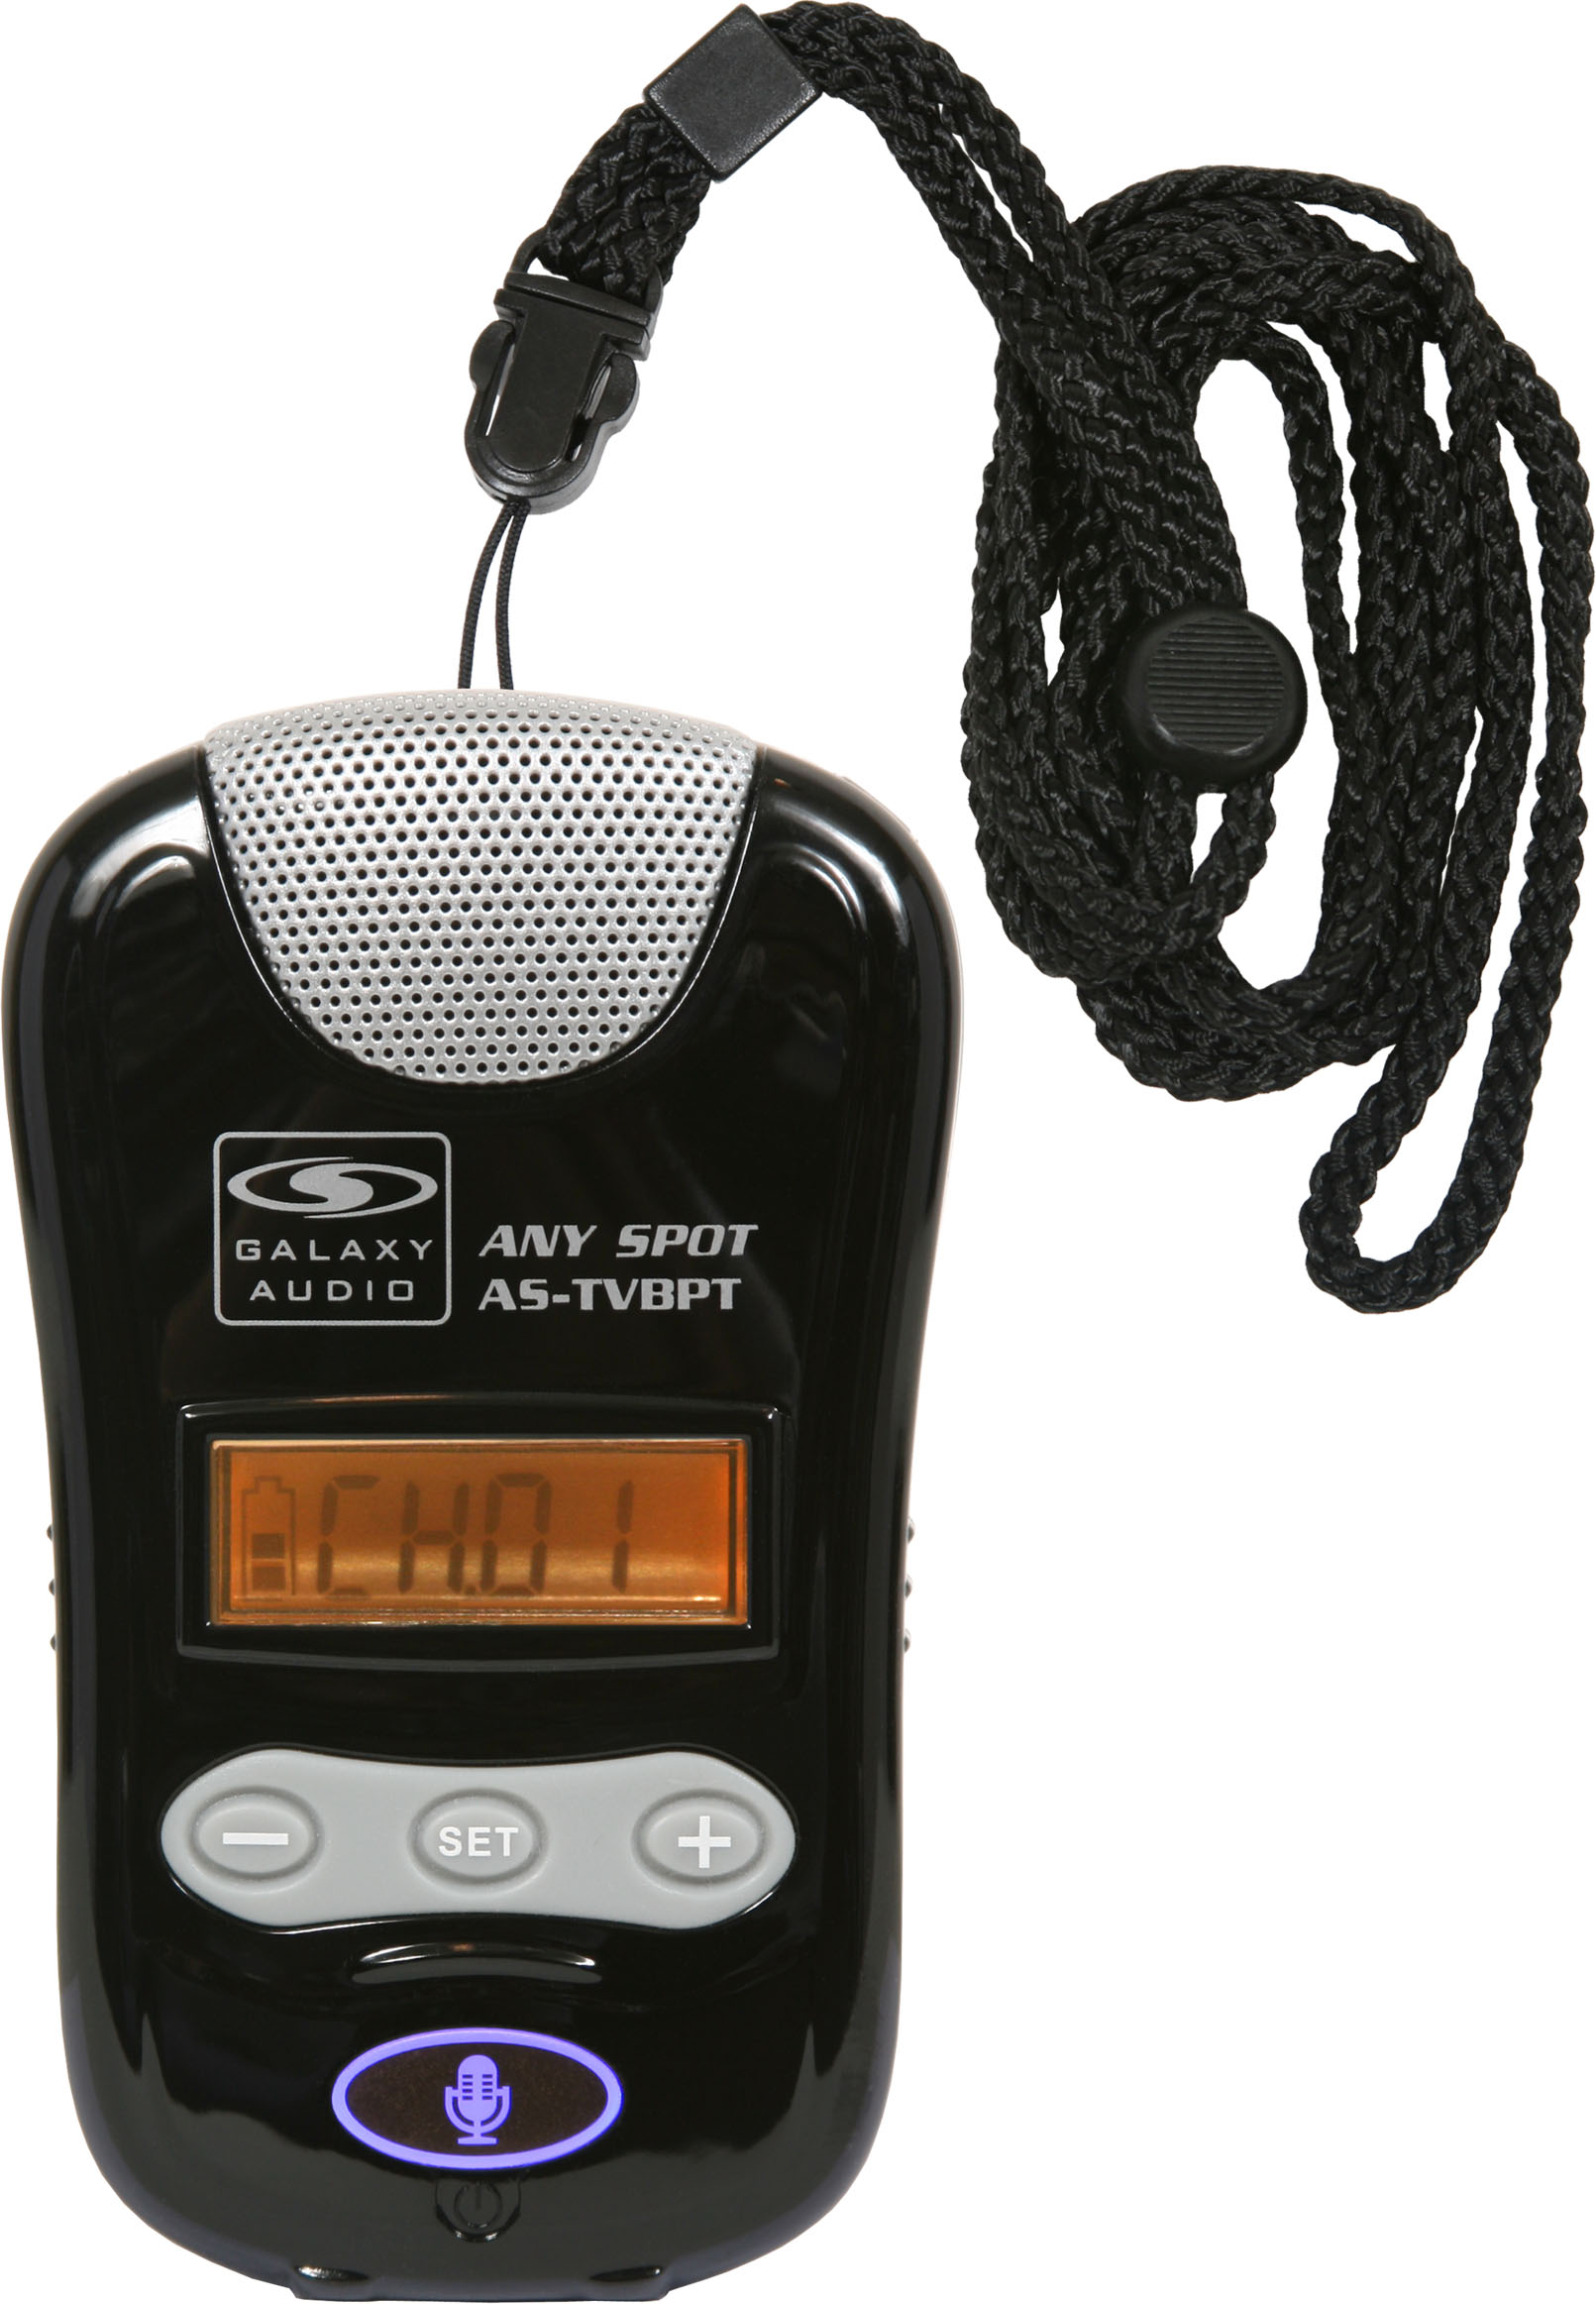 Galaxy Audio TG-BPTR-4 Any Spot Tour Guide Kit with AS-TVBPT Pendant Transmitter